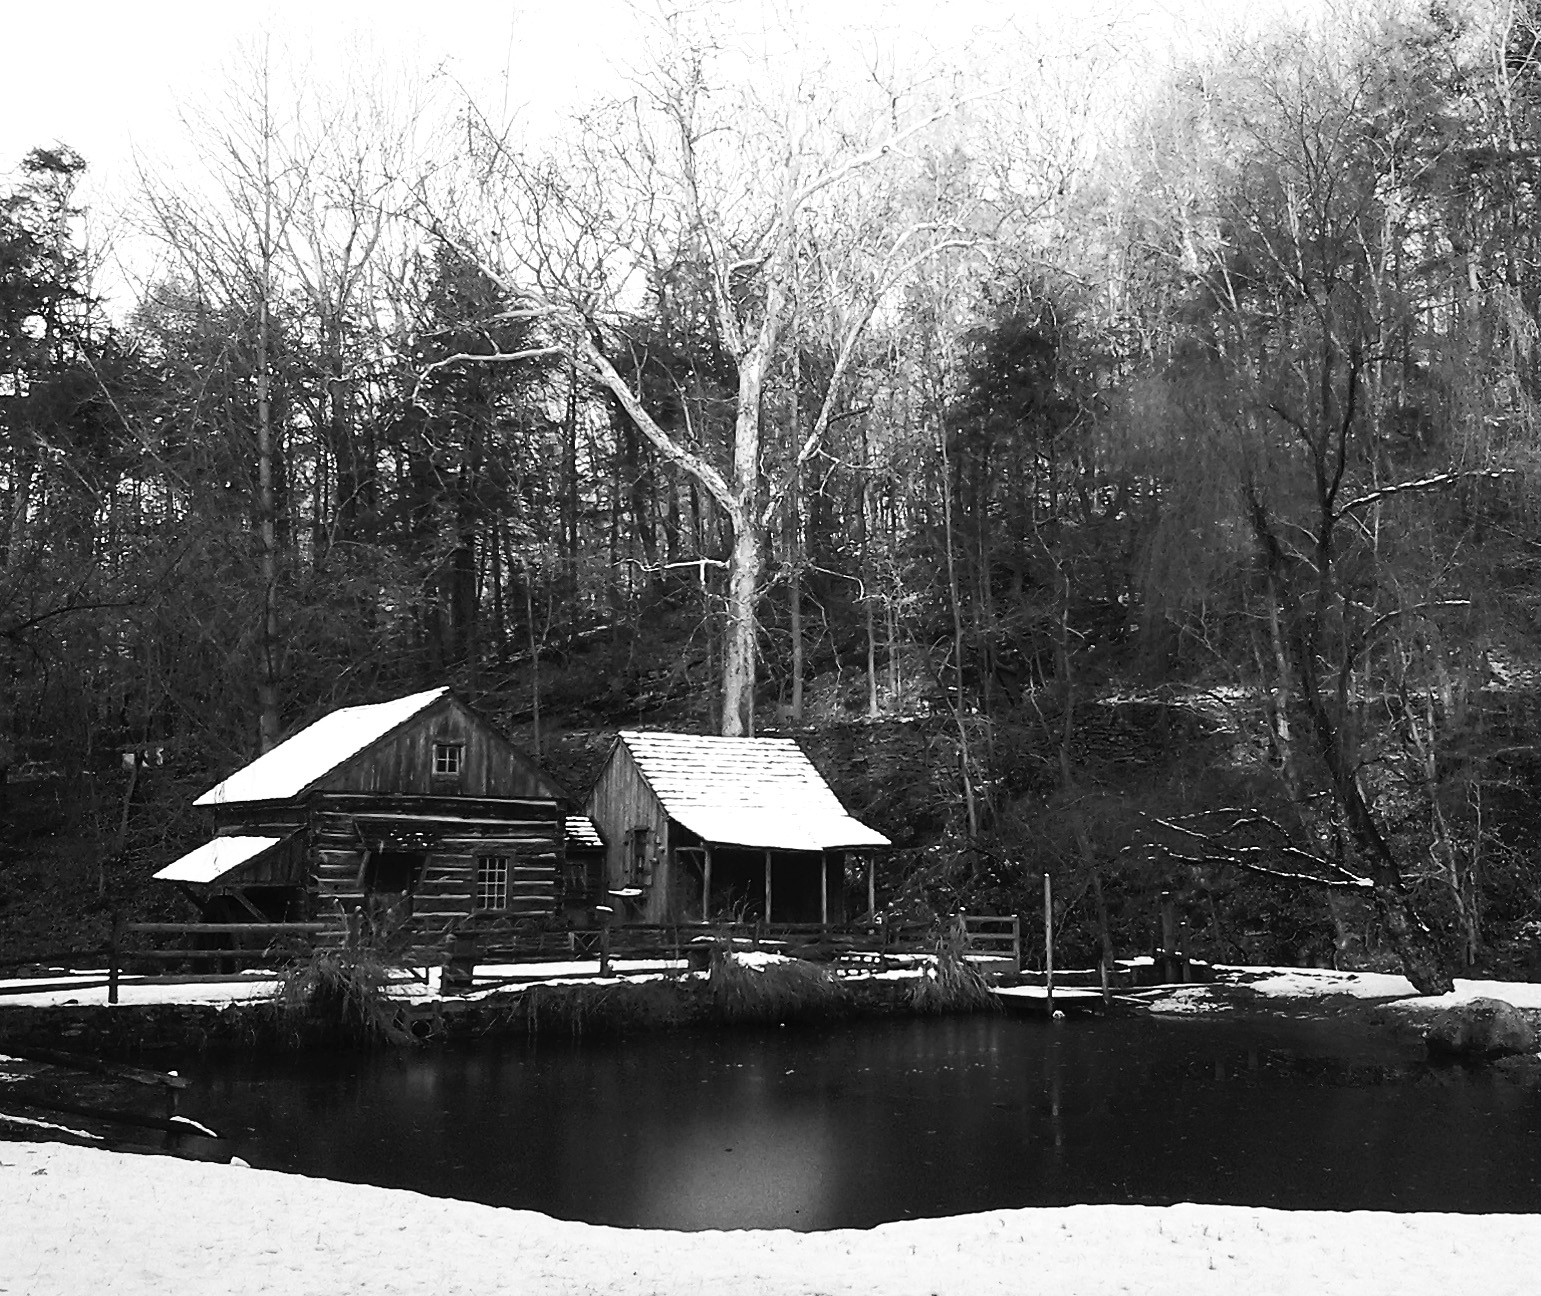 Black & White Of County Cabin In The Snow